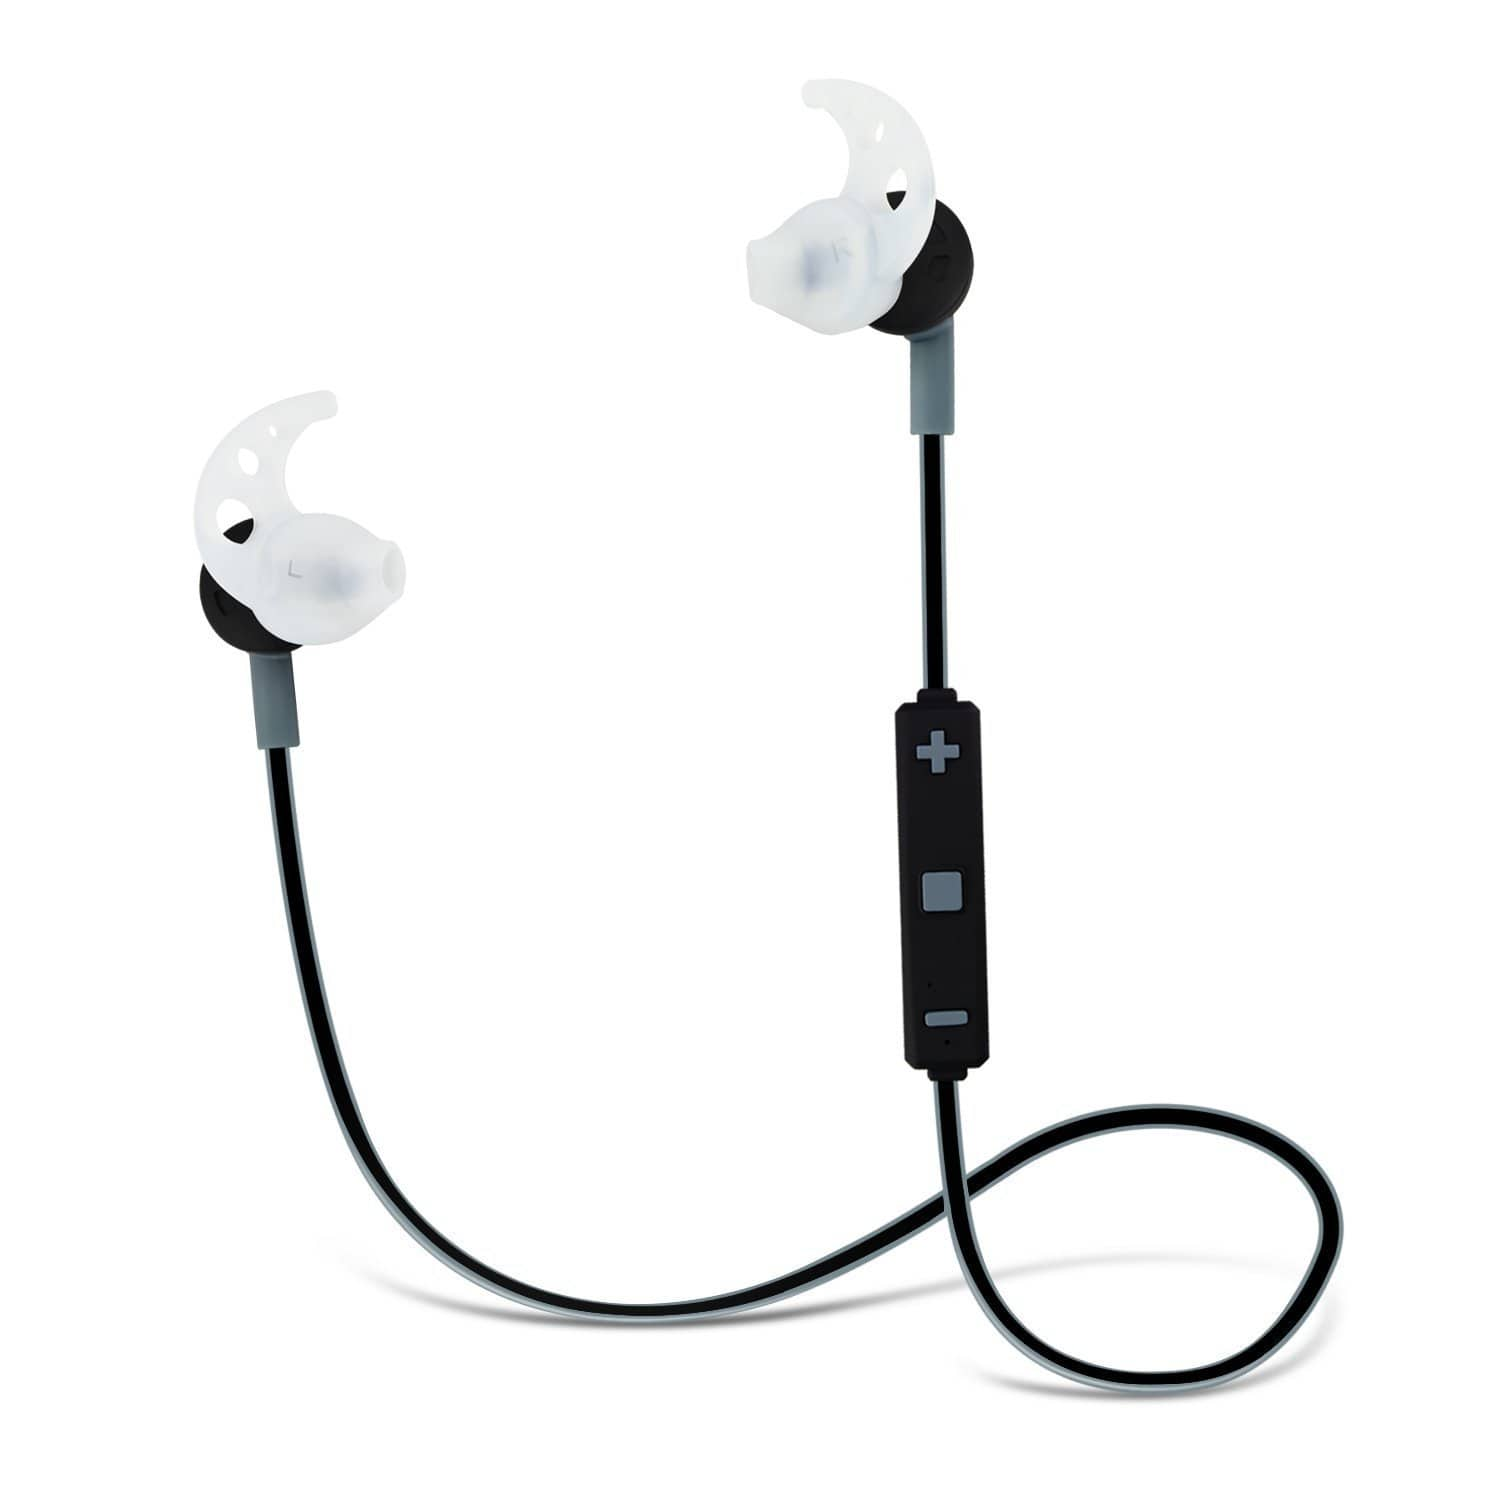 Noise Cancelling Sport Bluetooth Earbuds w/ Mic - Gray or White (Free Prime Shipping) $9.5